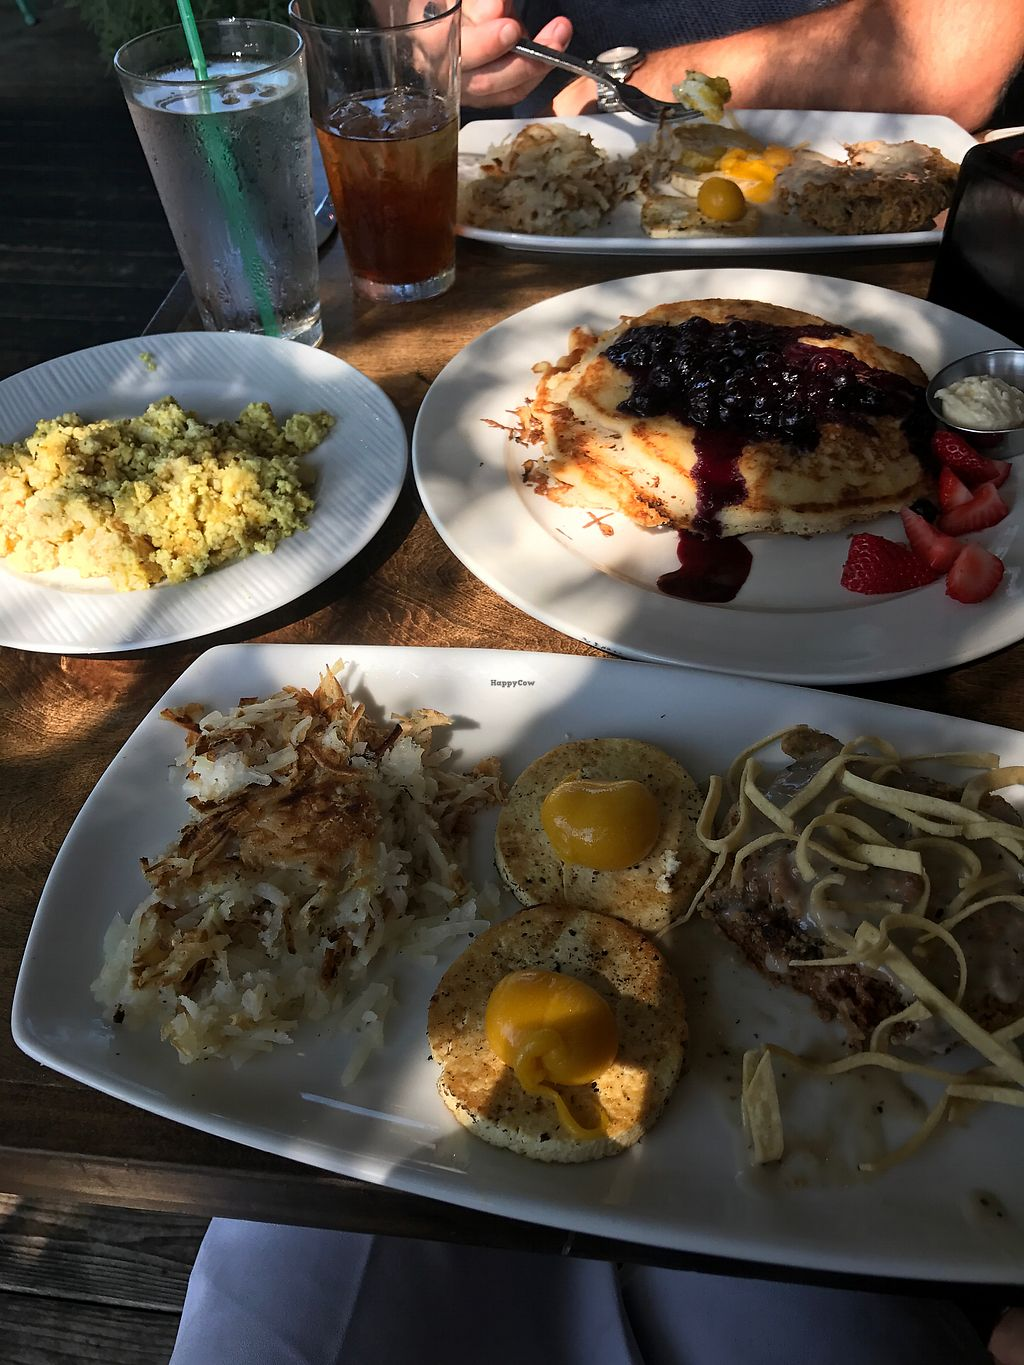 """Photo of V-Eats  by <a href=""""/members/profile/amygb"""">amygb</a> <br/>Chicken Fried Steak and Fruit Pancakes with tofu scramble.  <br/> August 20, 2017  - <a href='/contact/abuse/image/82061/294829'>Report</a>"""